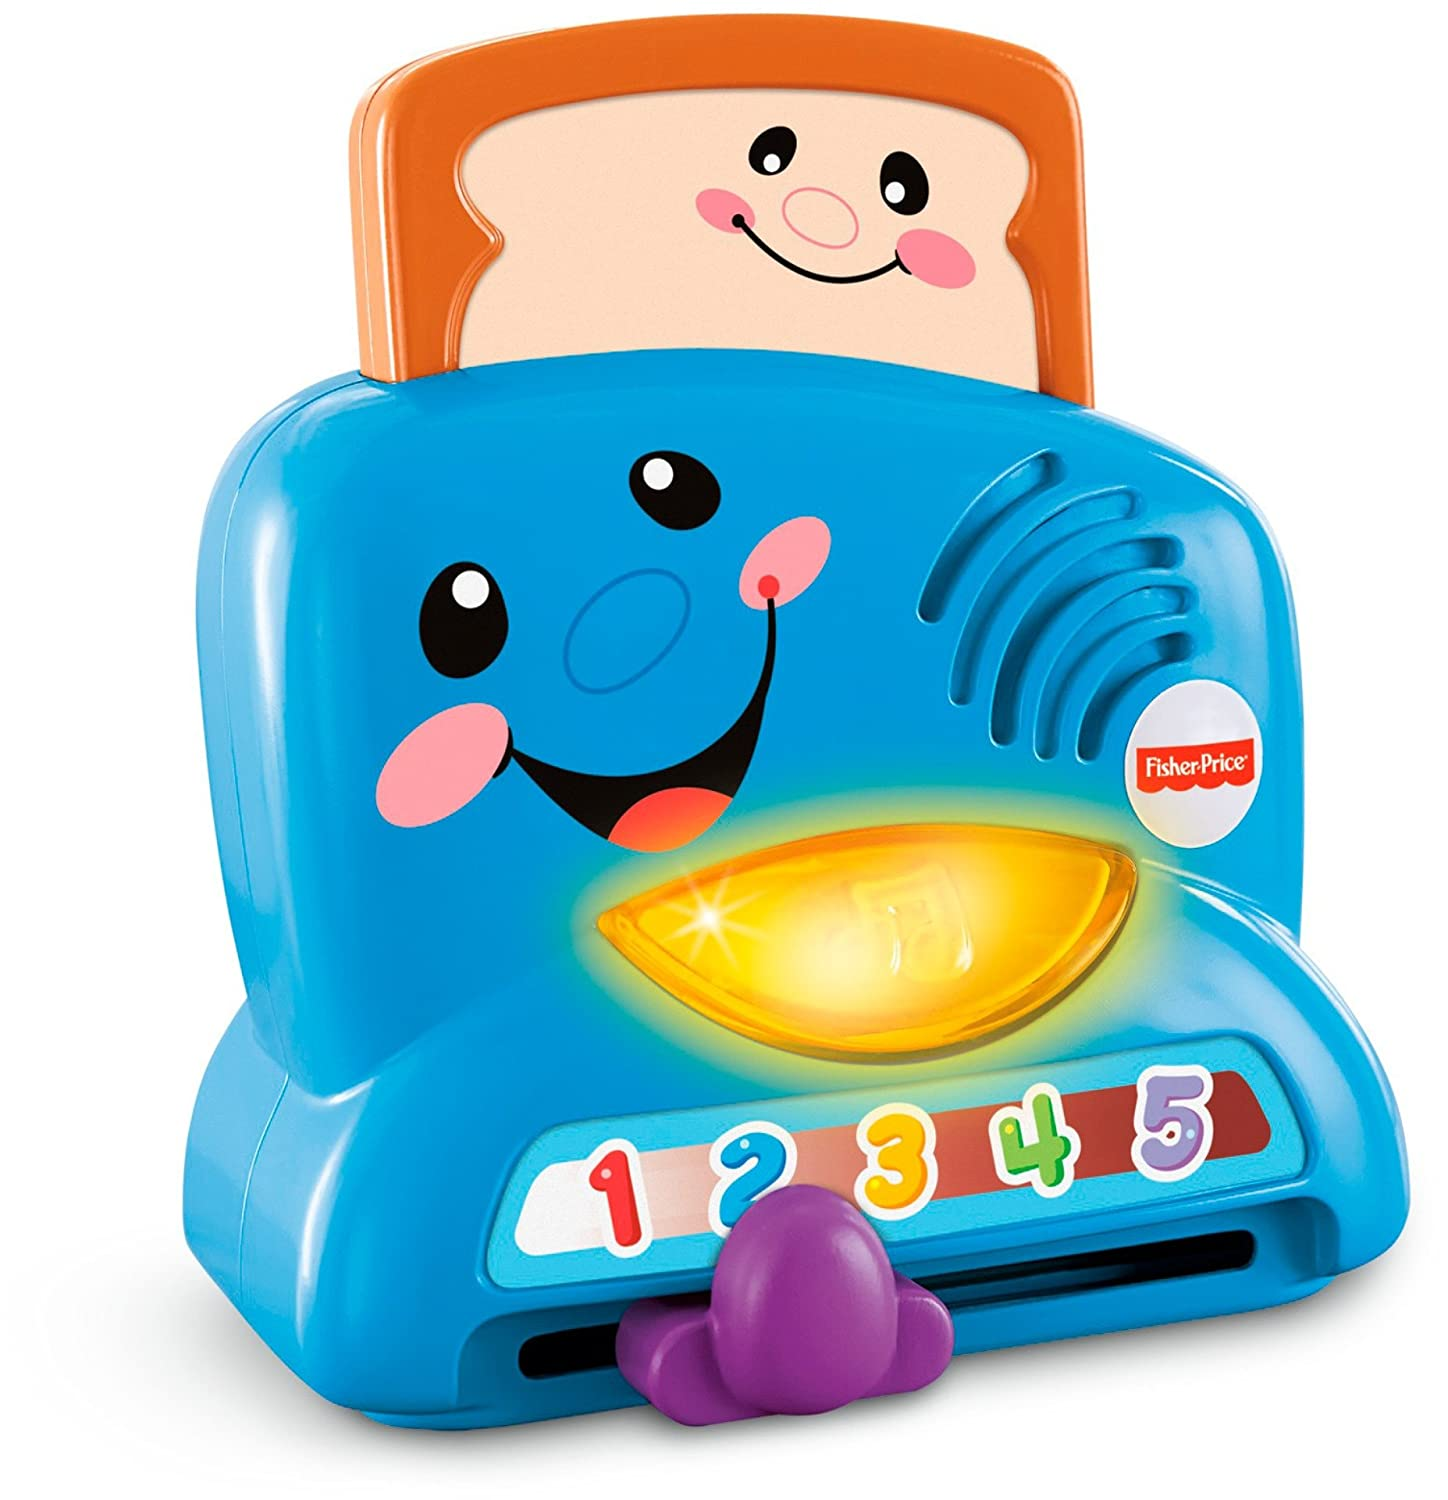 Amazon.com: Fisher-Price Laugh & Learn Peek-a-Boo Toaster: Toys & Games